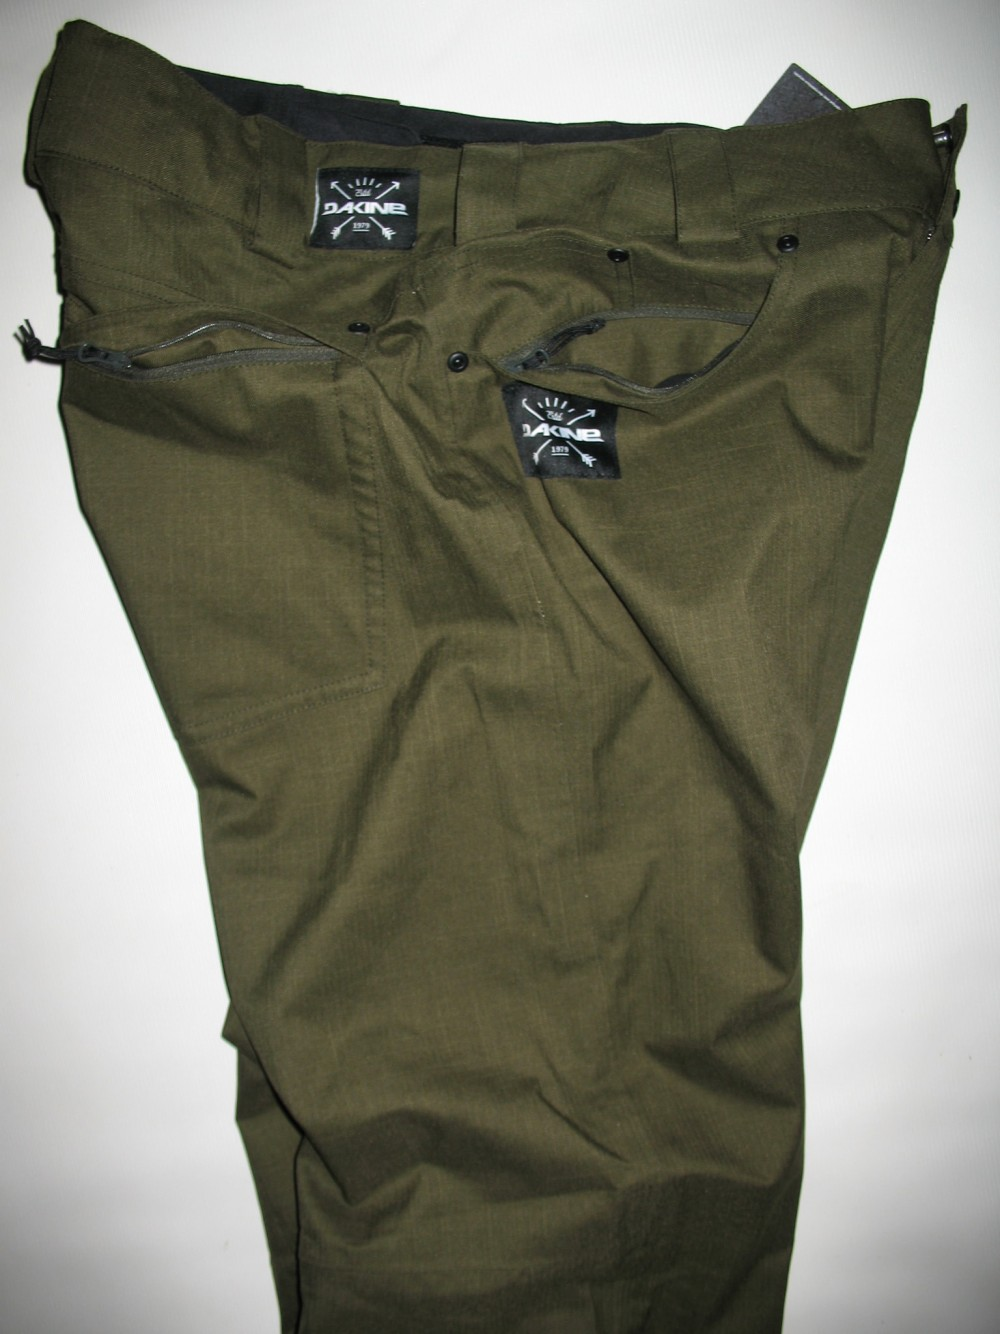 Штаны DAKINE Miner jungle ski/snowboard pants (размер L) - 4